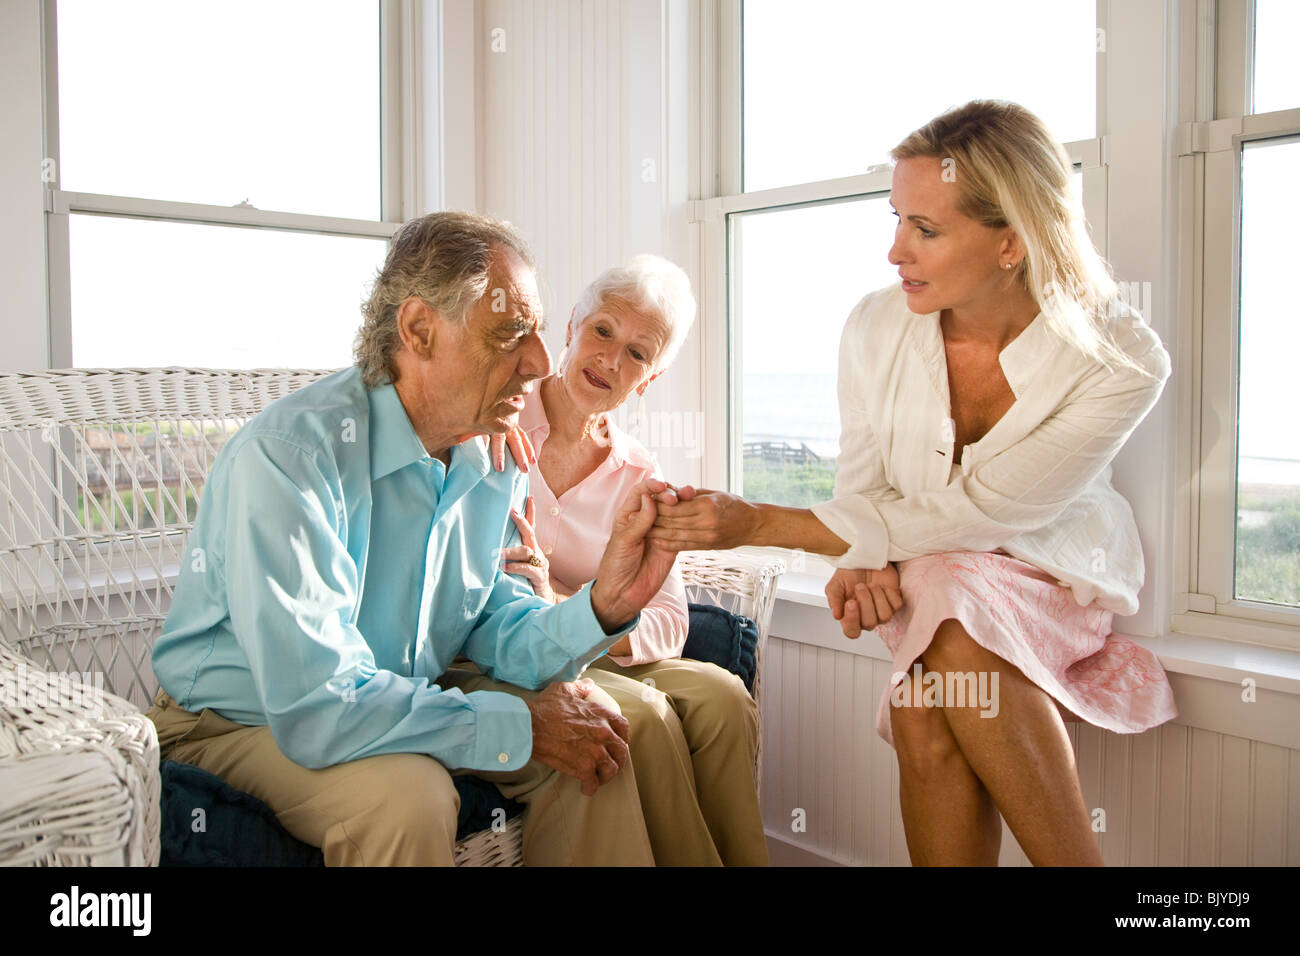 Adult daughter having serious discussion with senior parents Stock Photo